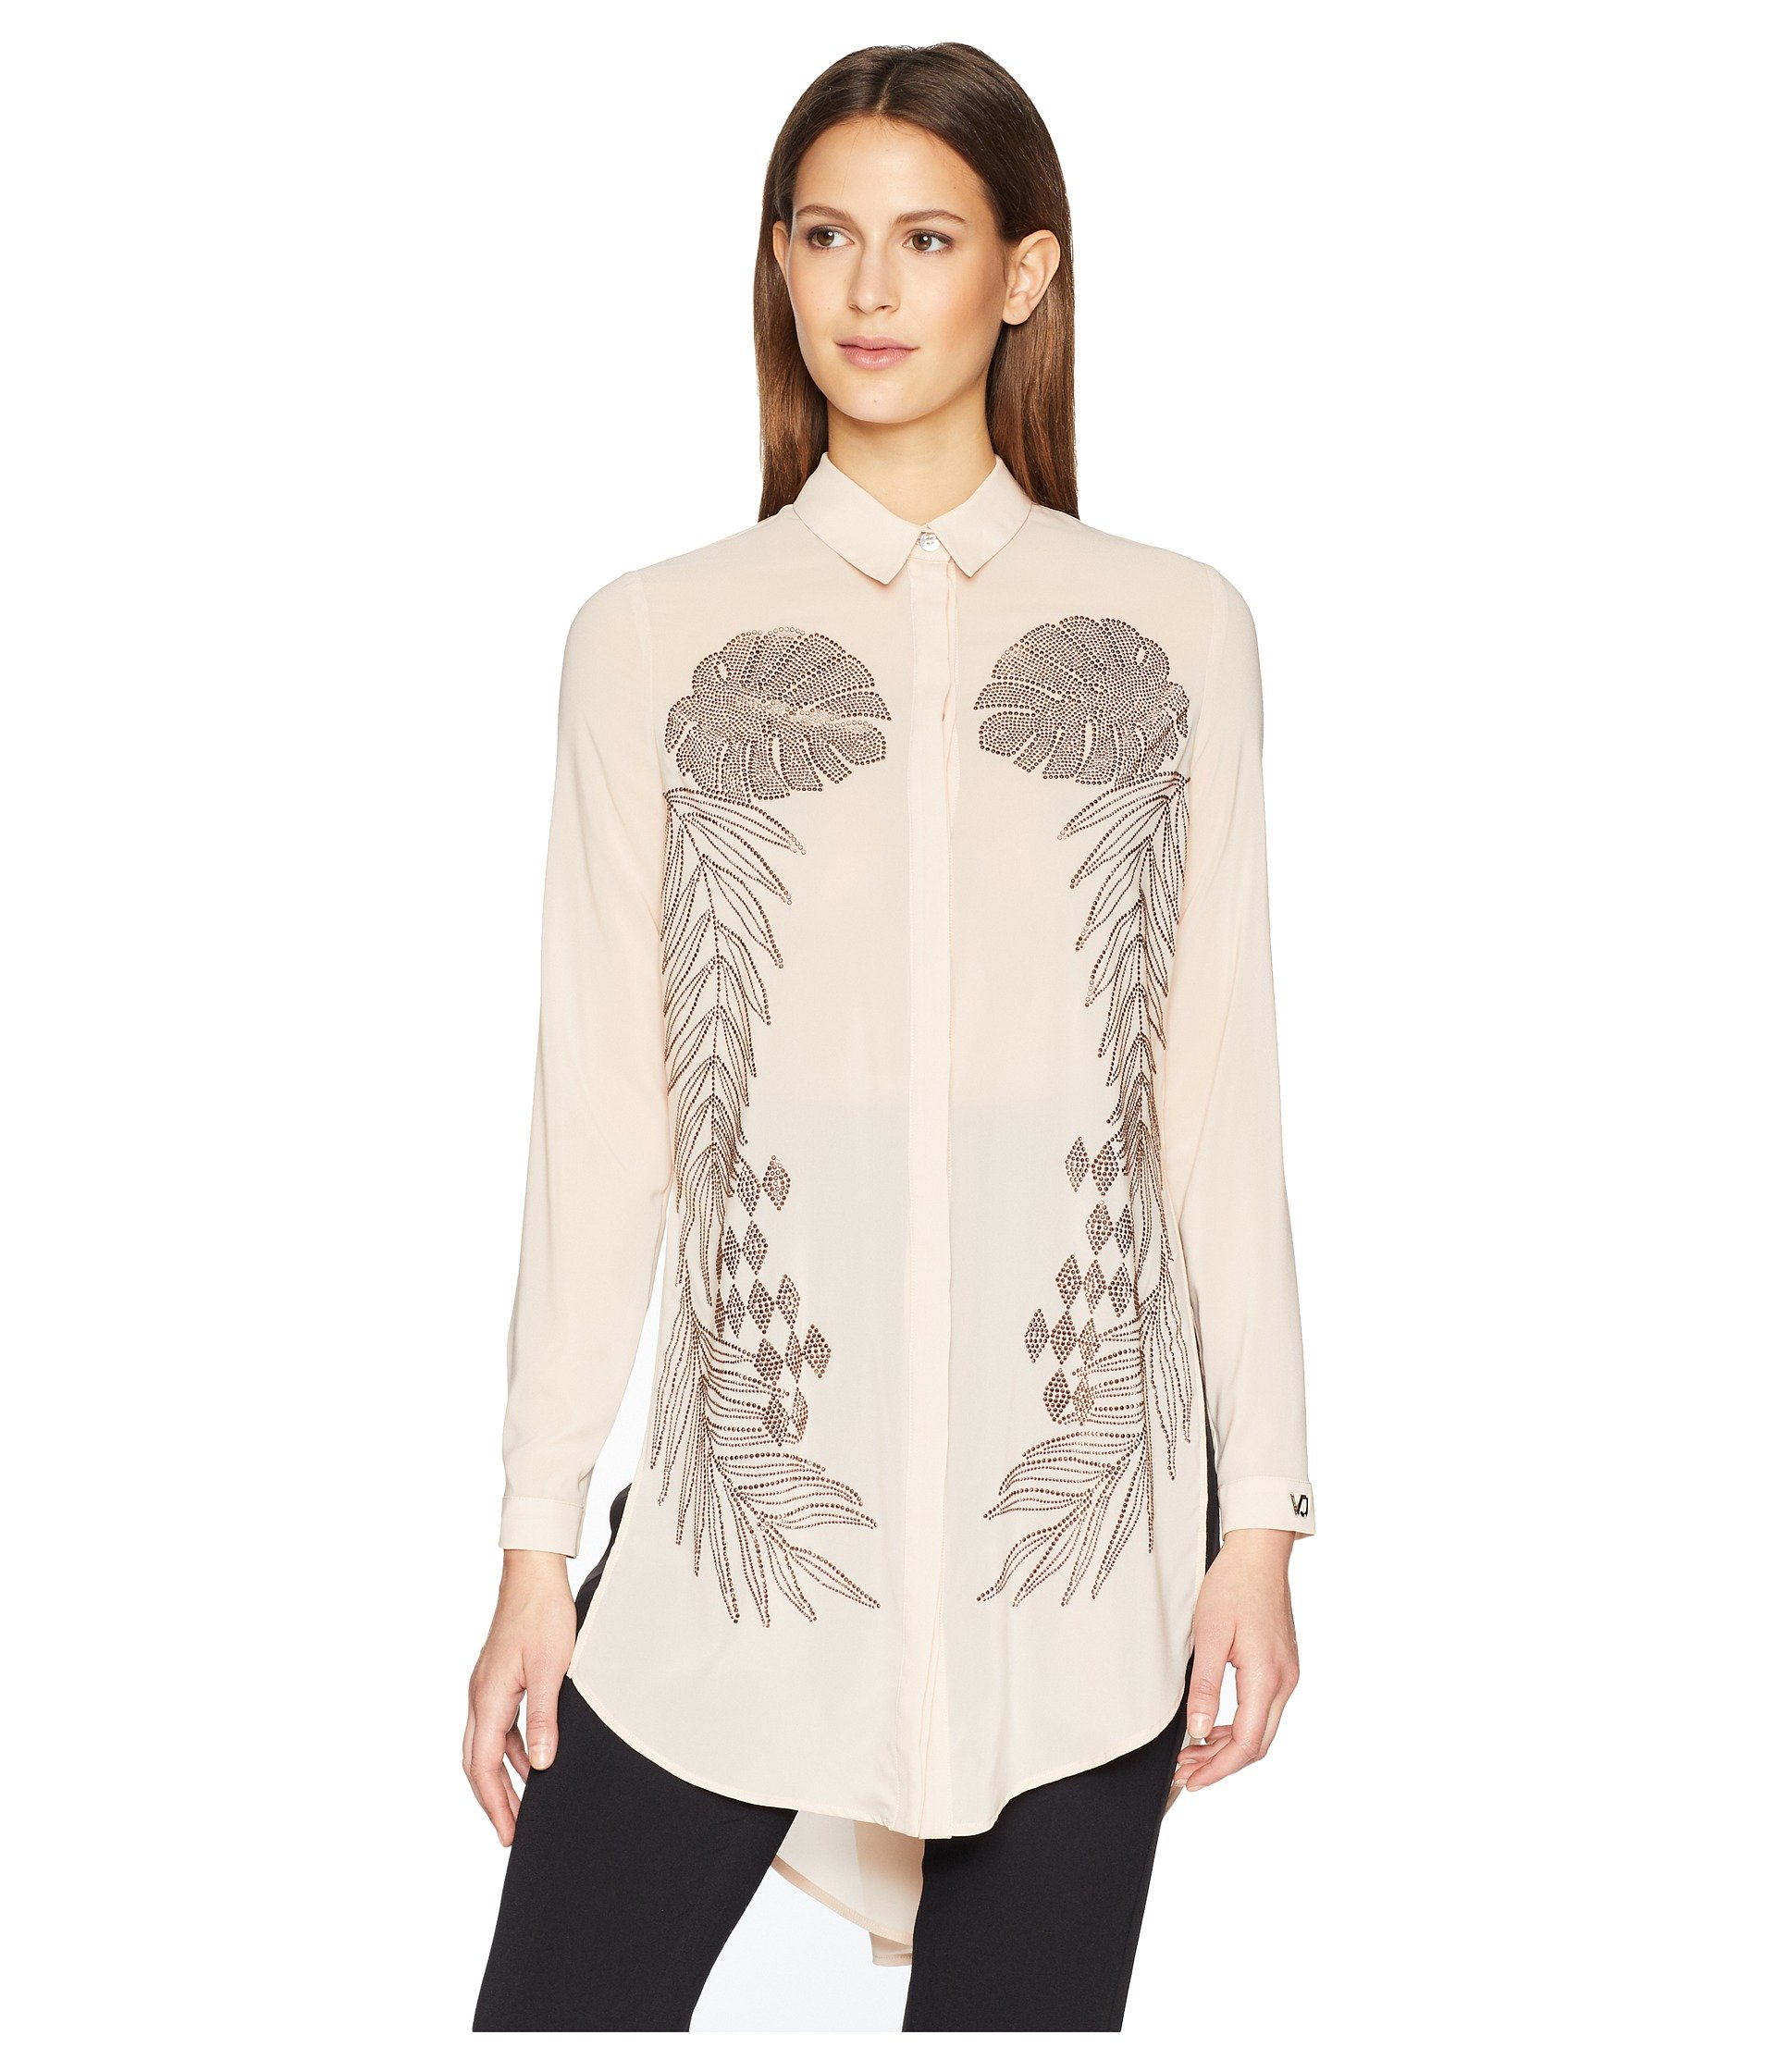 Blusa para Mujer Versace Jeans Sheer Button Up Tunic  + Versace en VeoyCompro.net